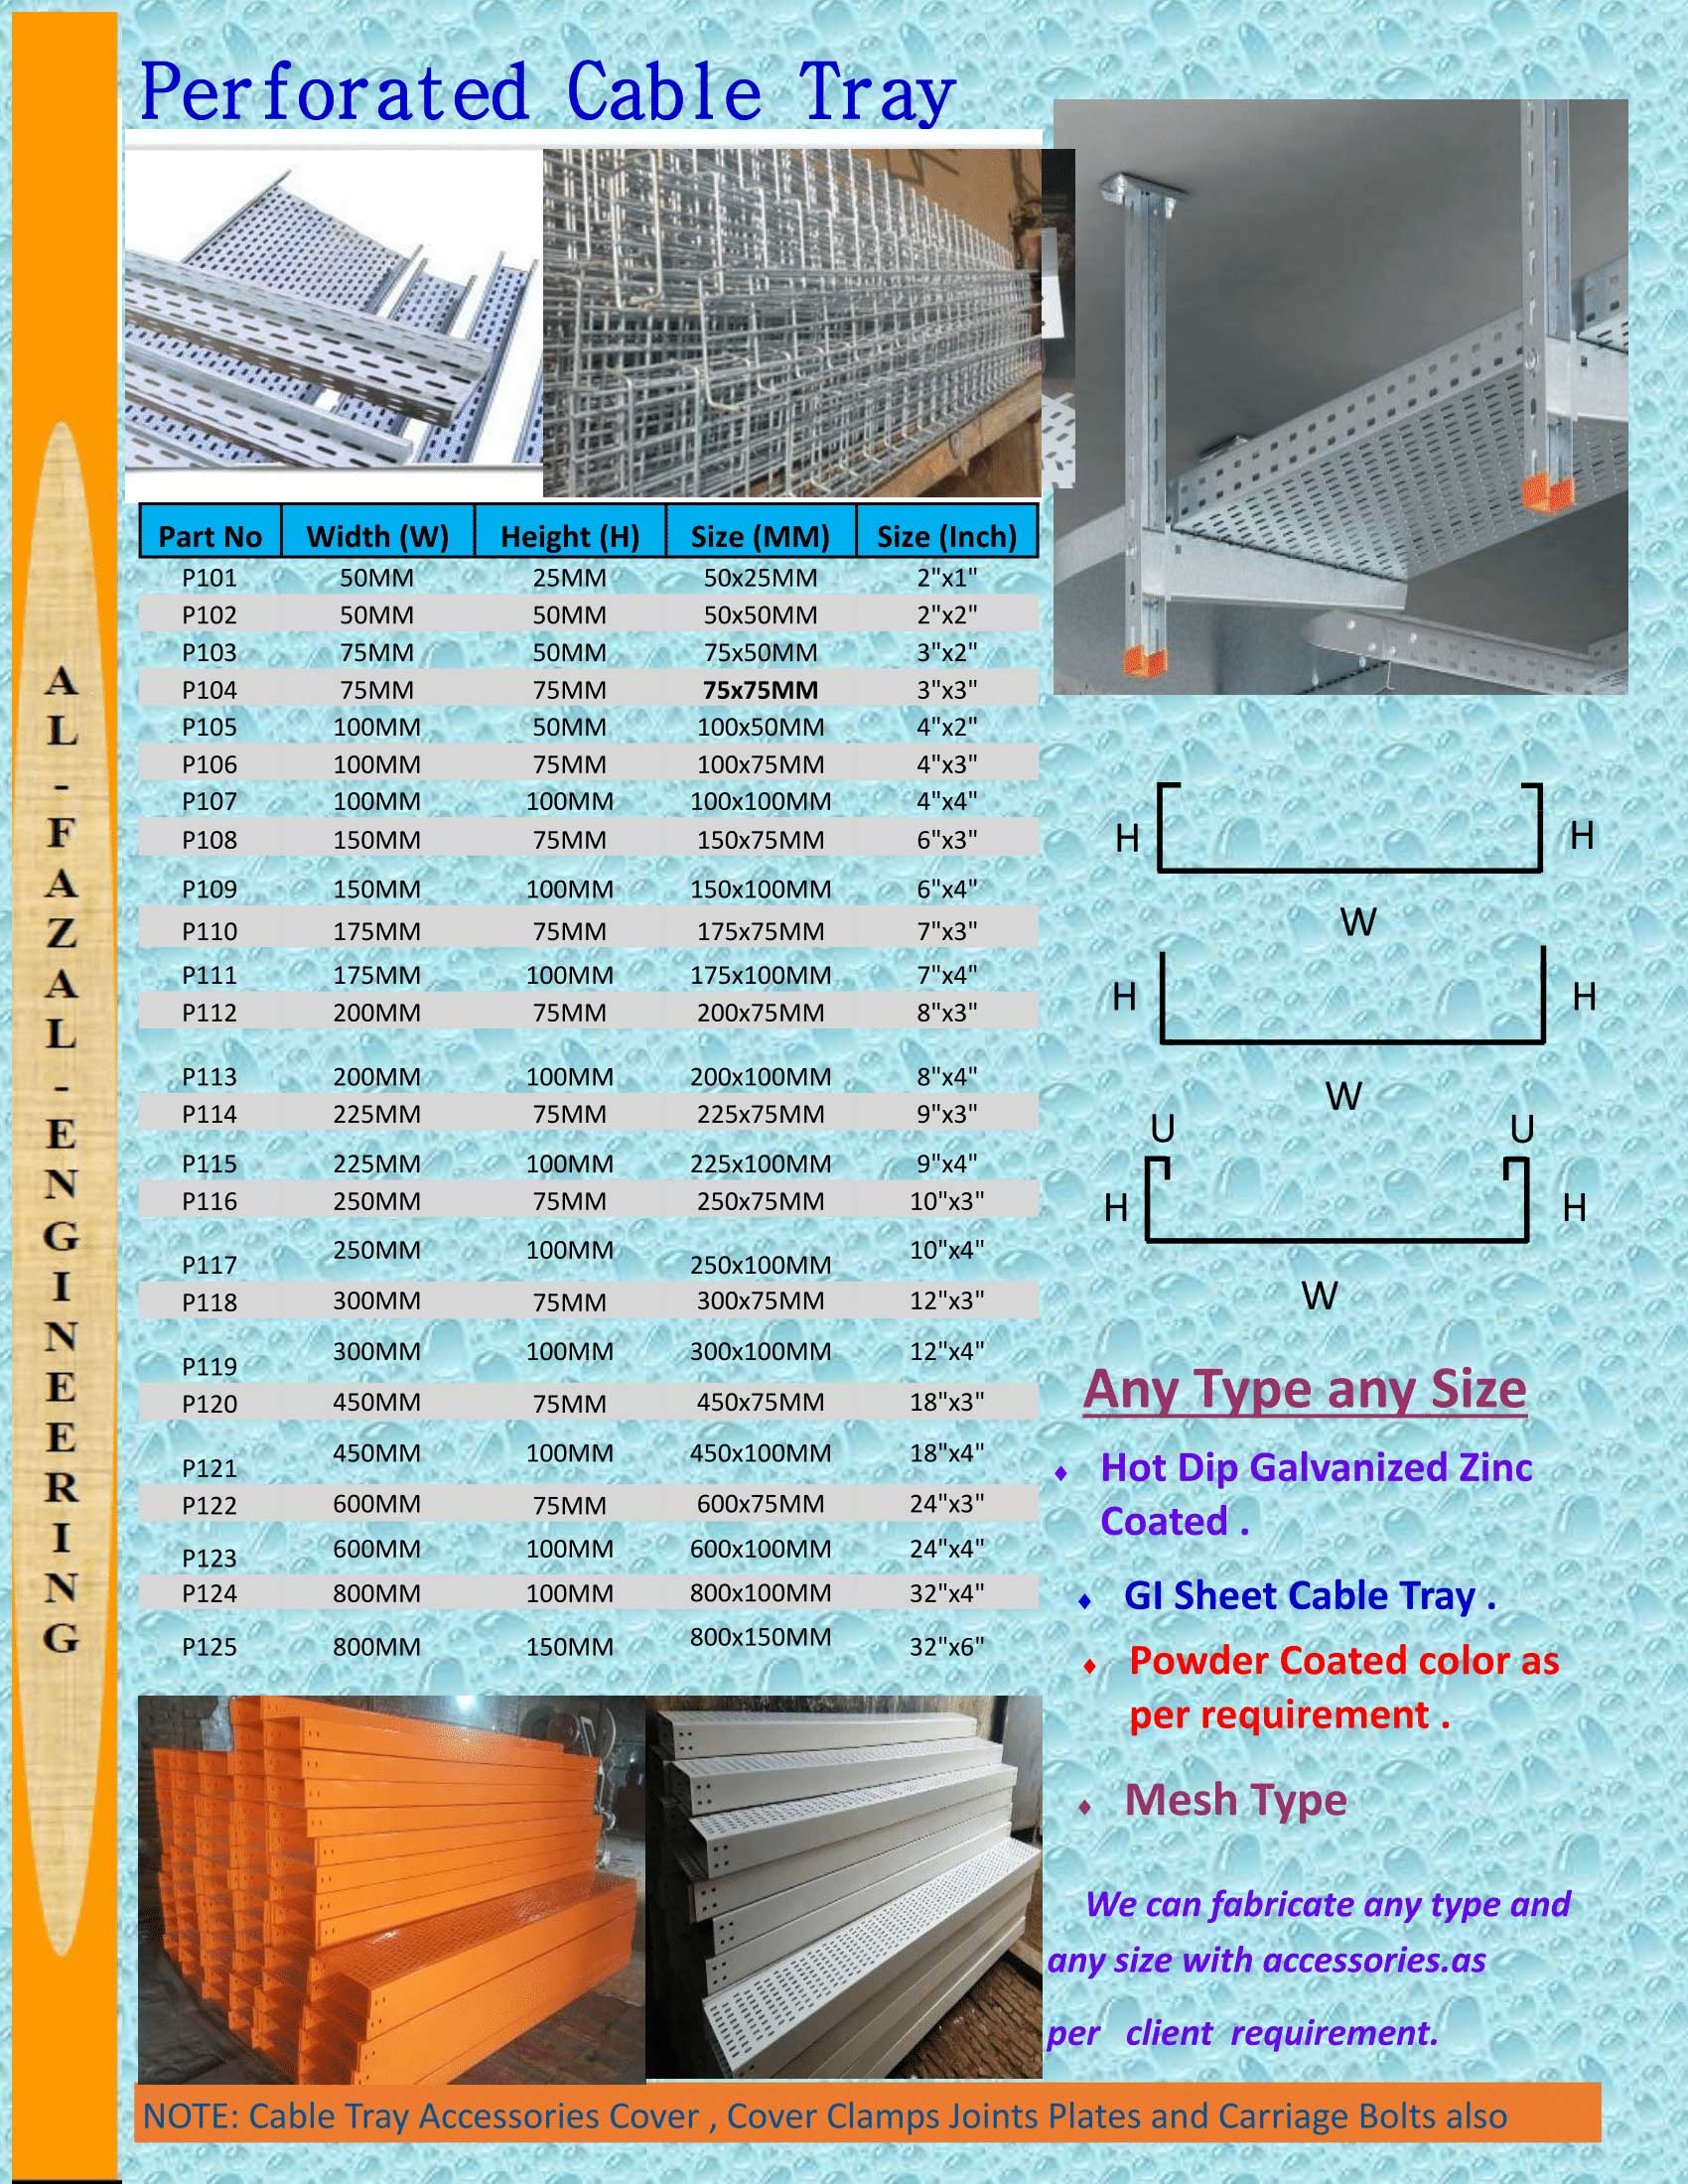 Cable Tray Perforated Cable Tray - Al-Fazal Engineering